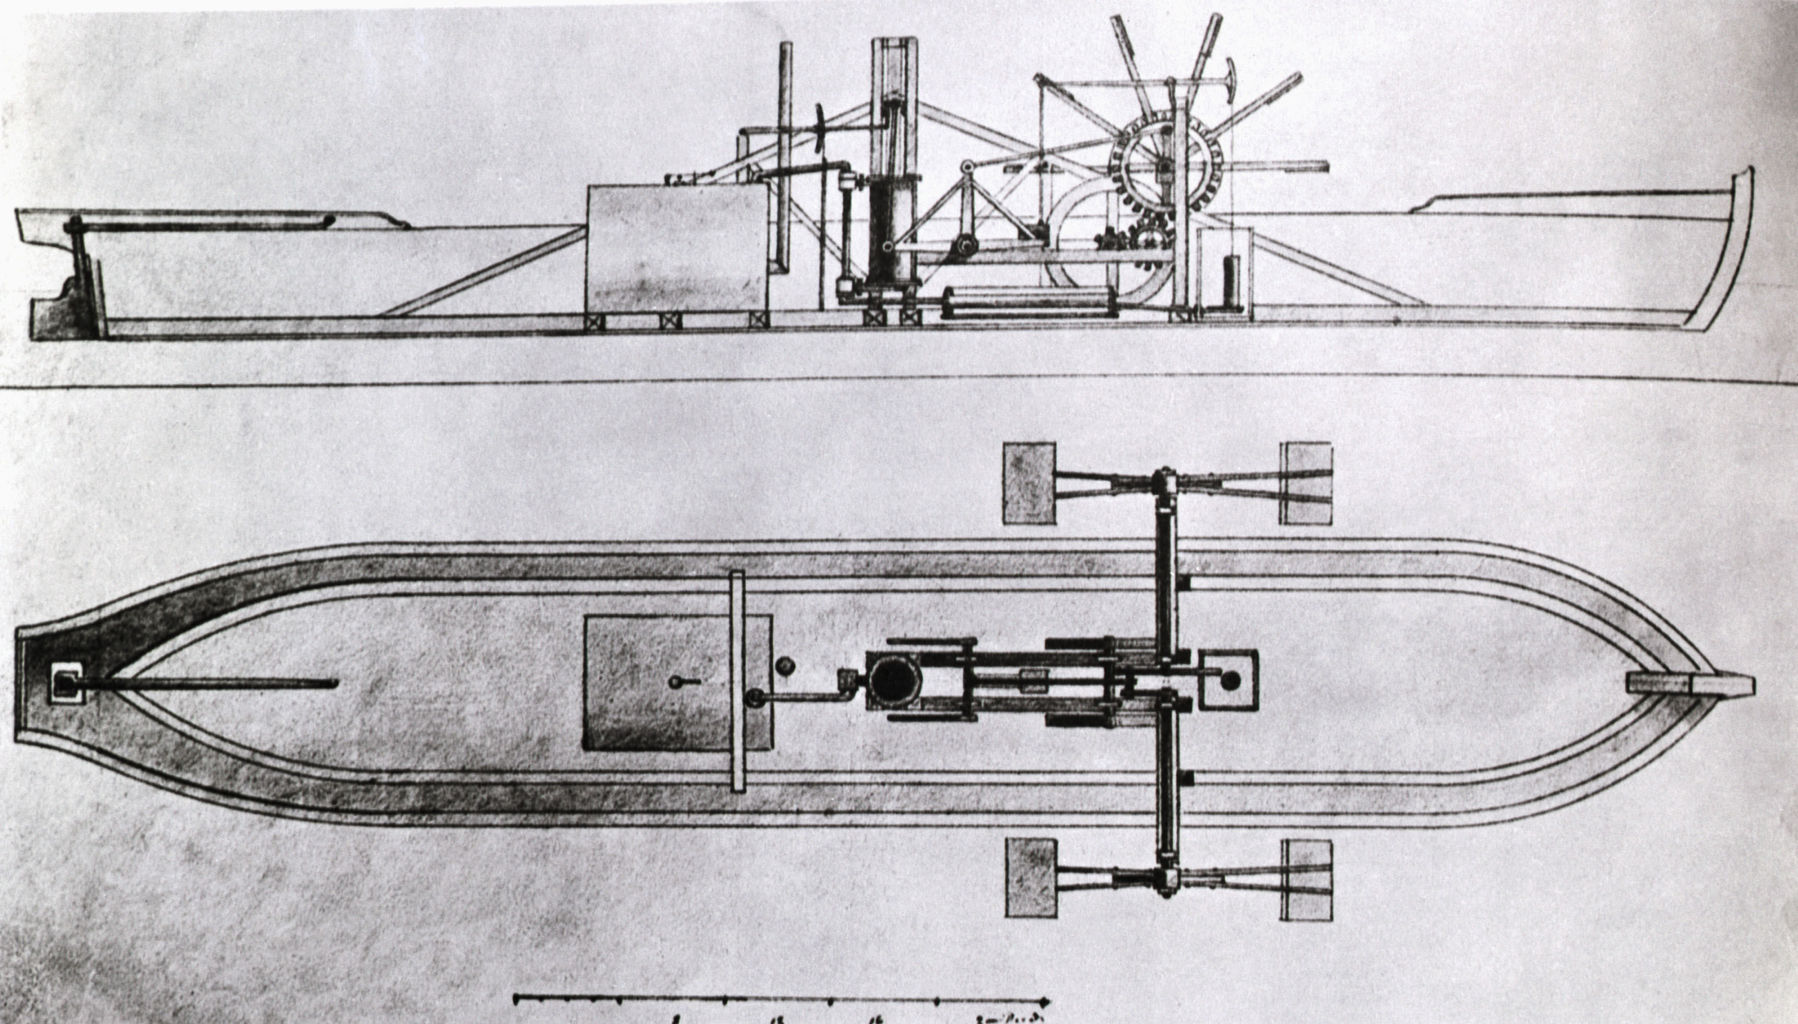 Worksheet First Steamboat Invented wix com the unerground railroad created by hawkins747 based on diagram of first steamboat